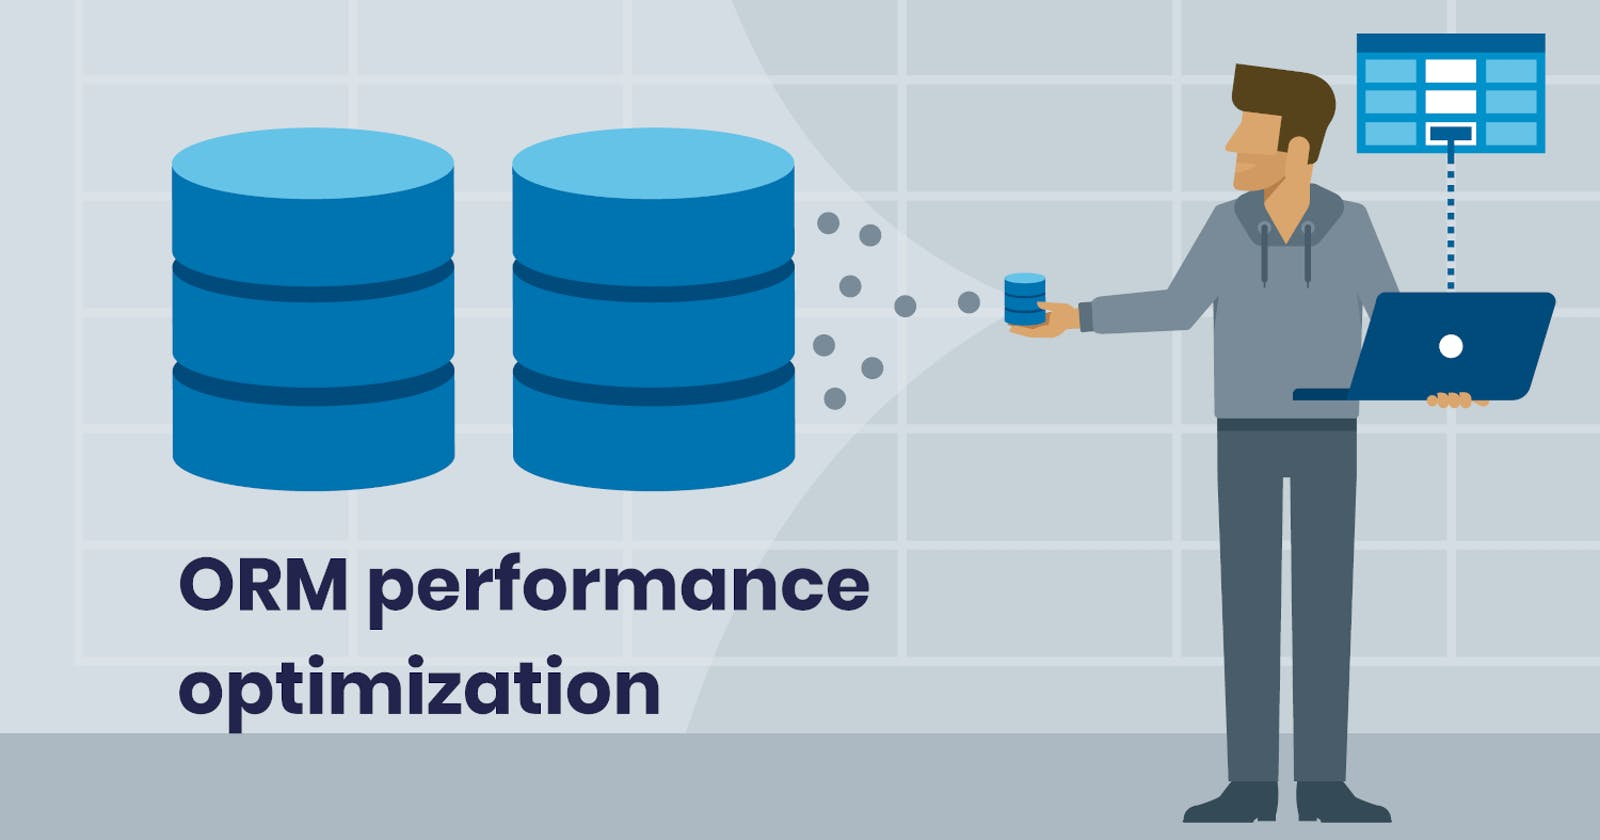 Make your application scalable optimizing the ORM performance